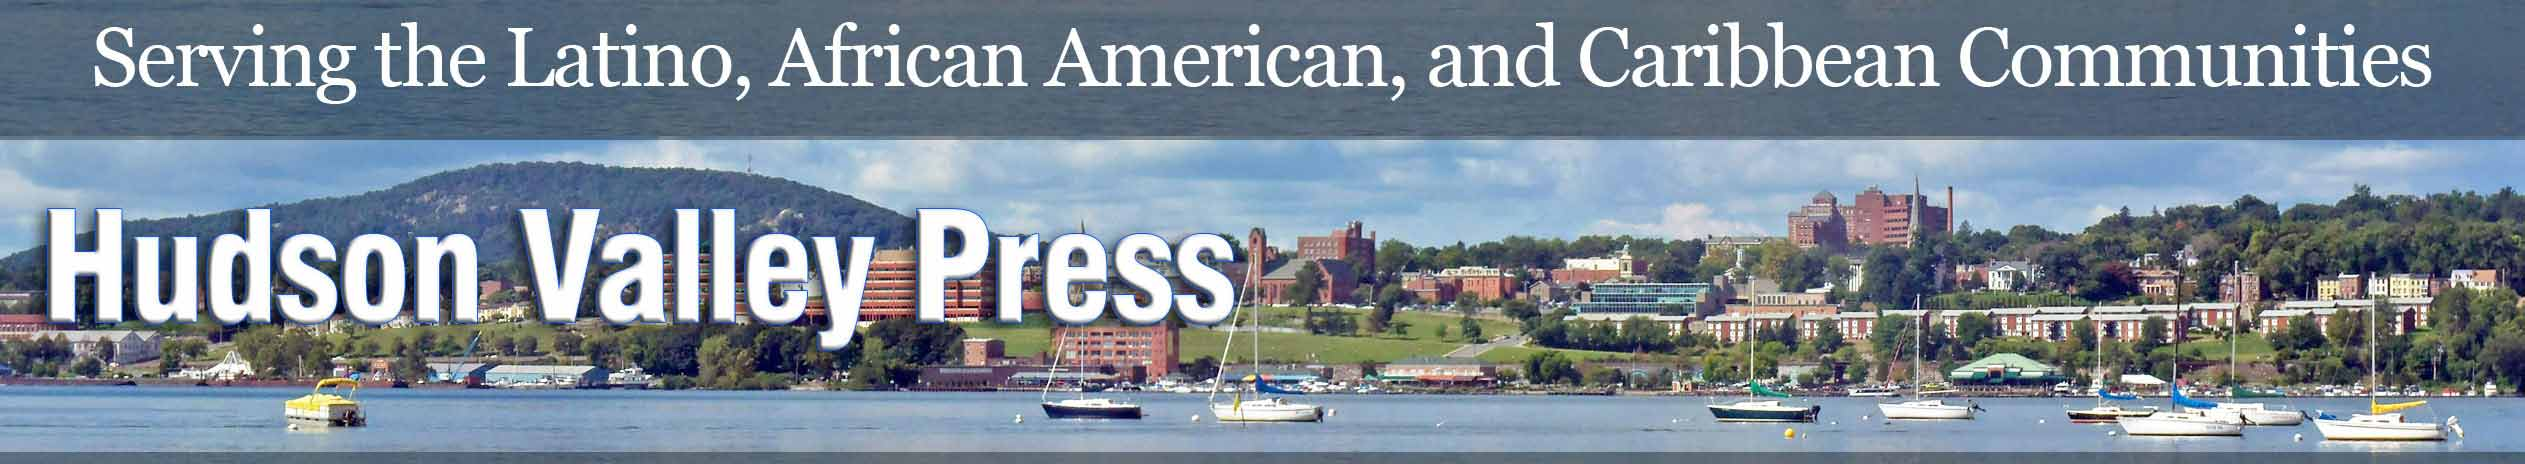 Hudson Valley Press Online Main Header Image